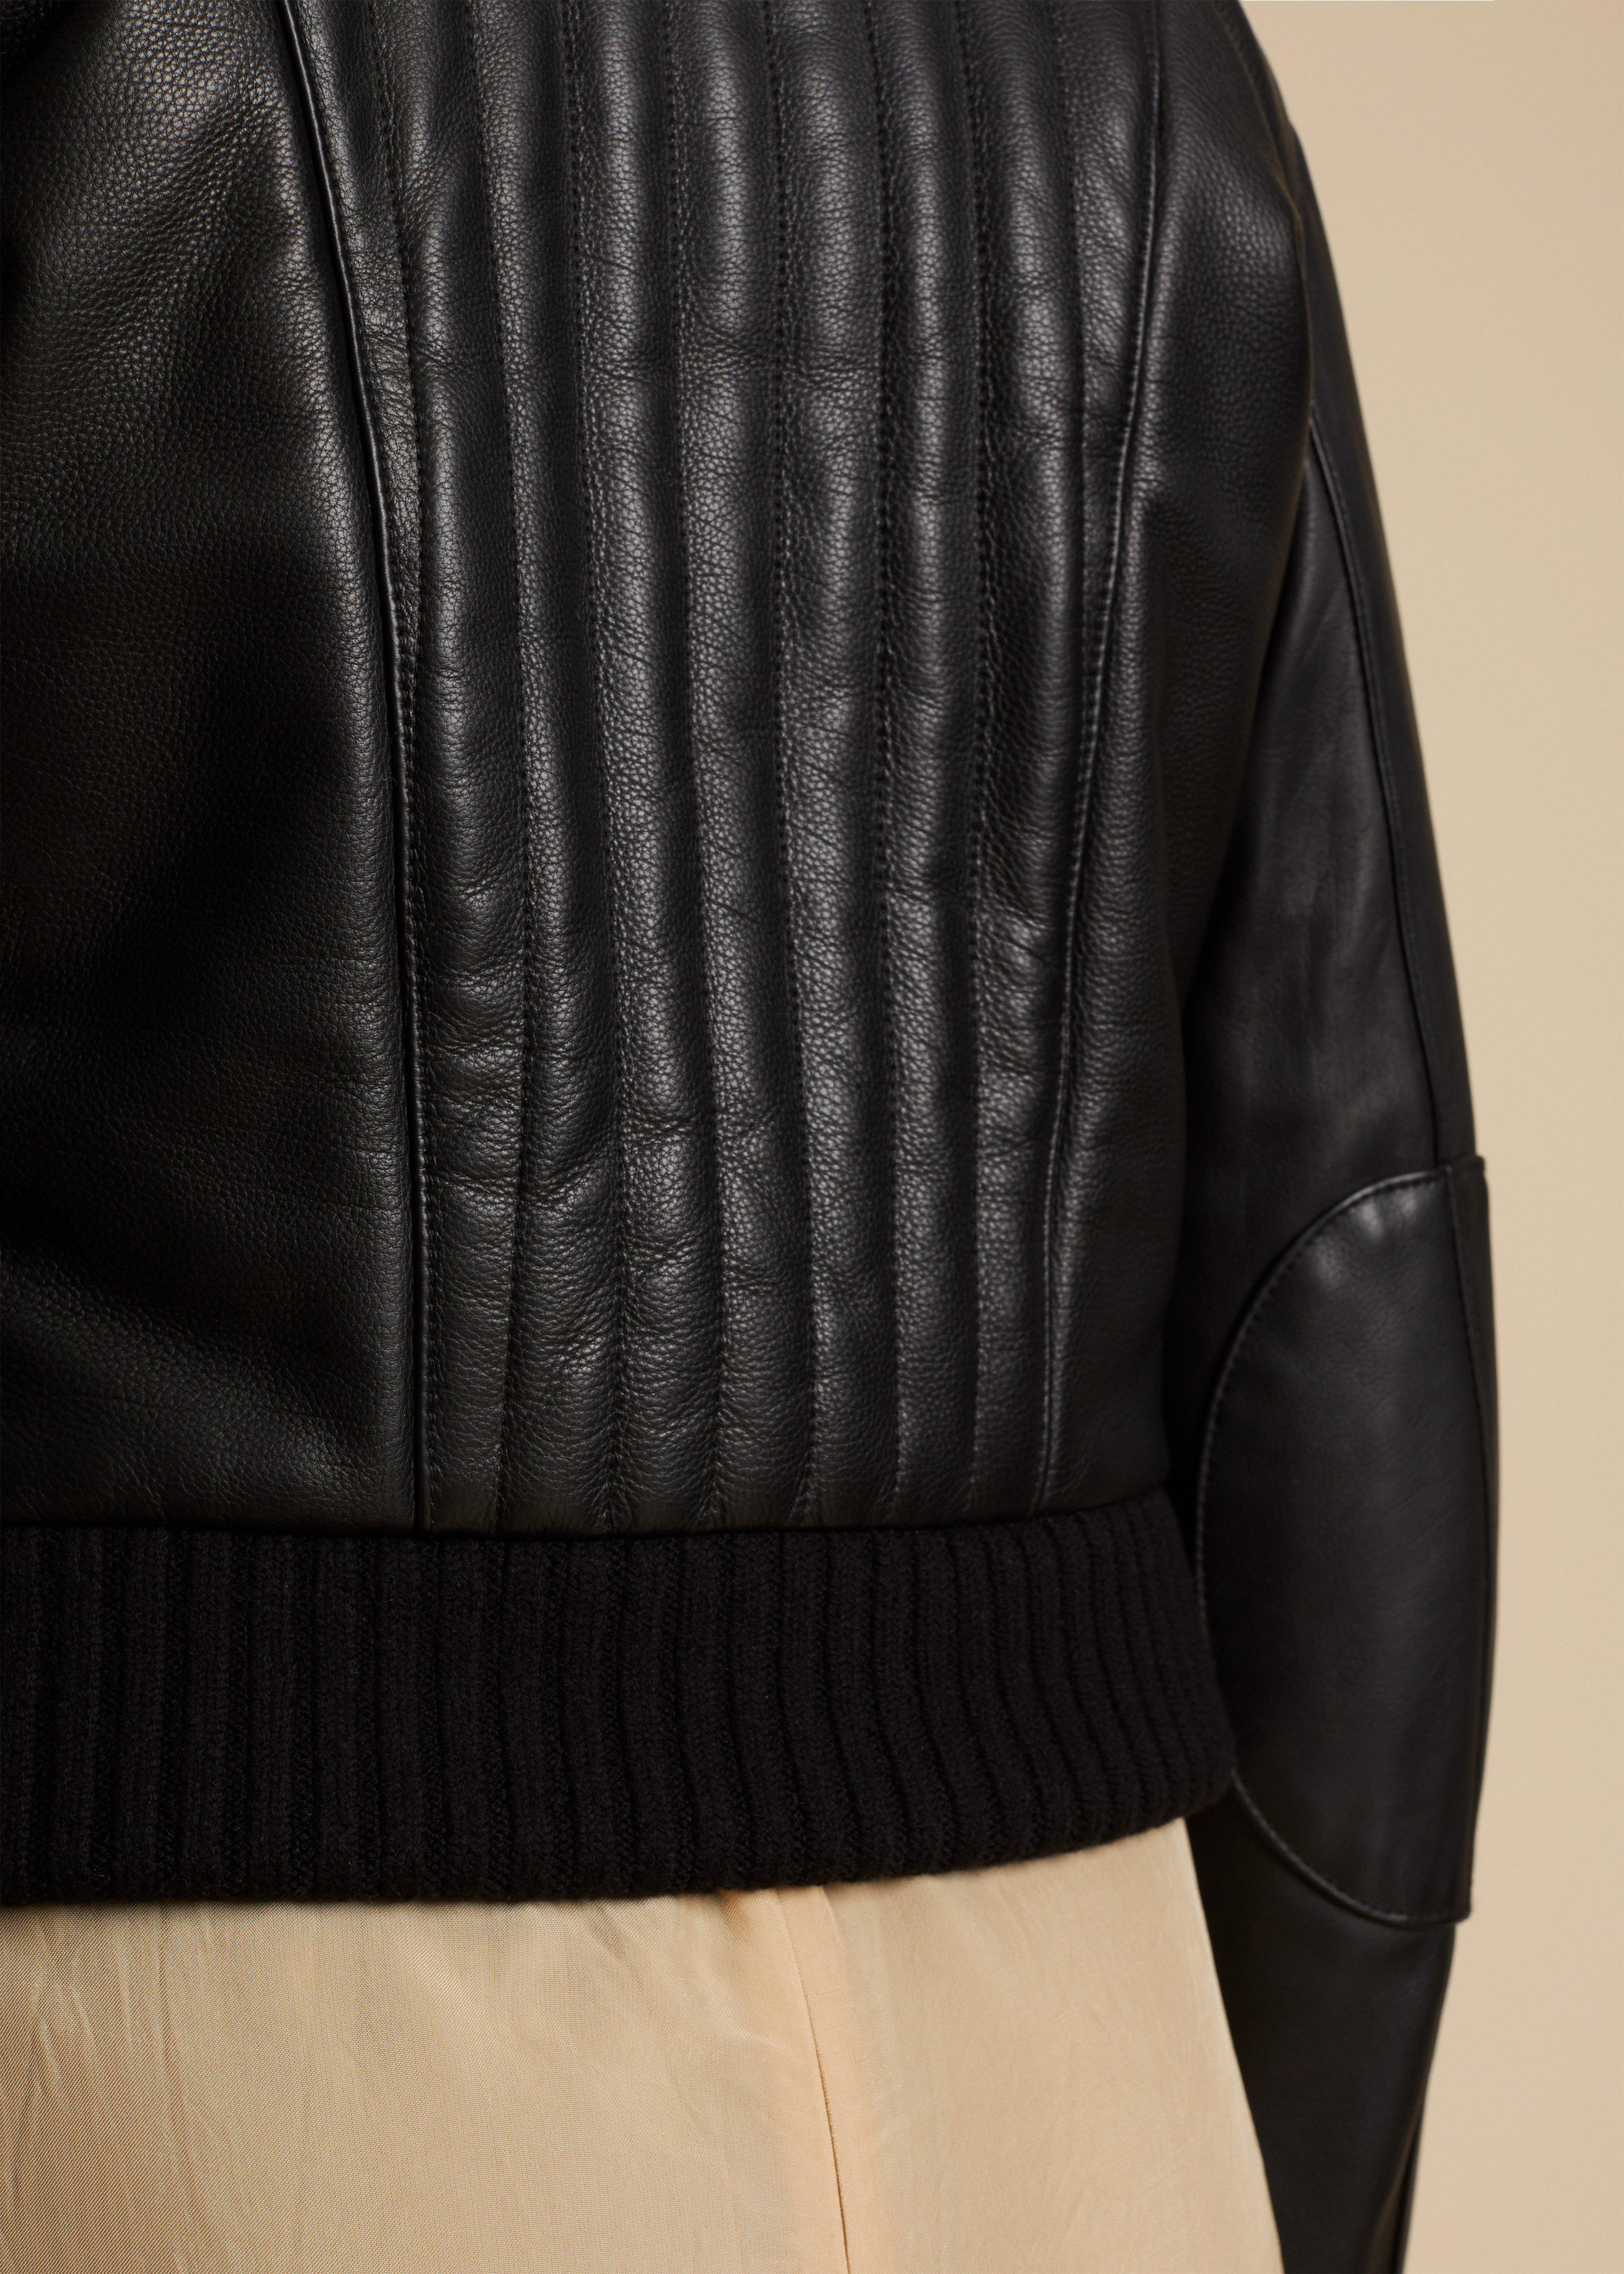 The Nicolette Jacket in Black Leather 5